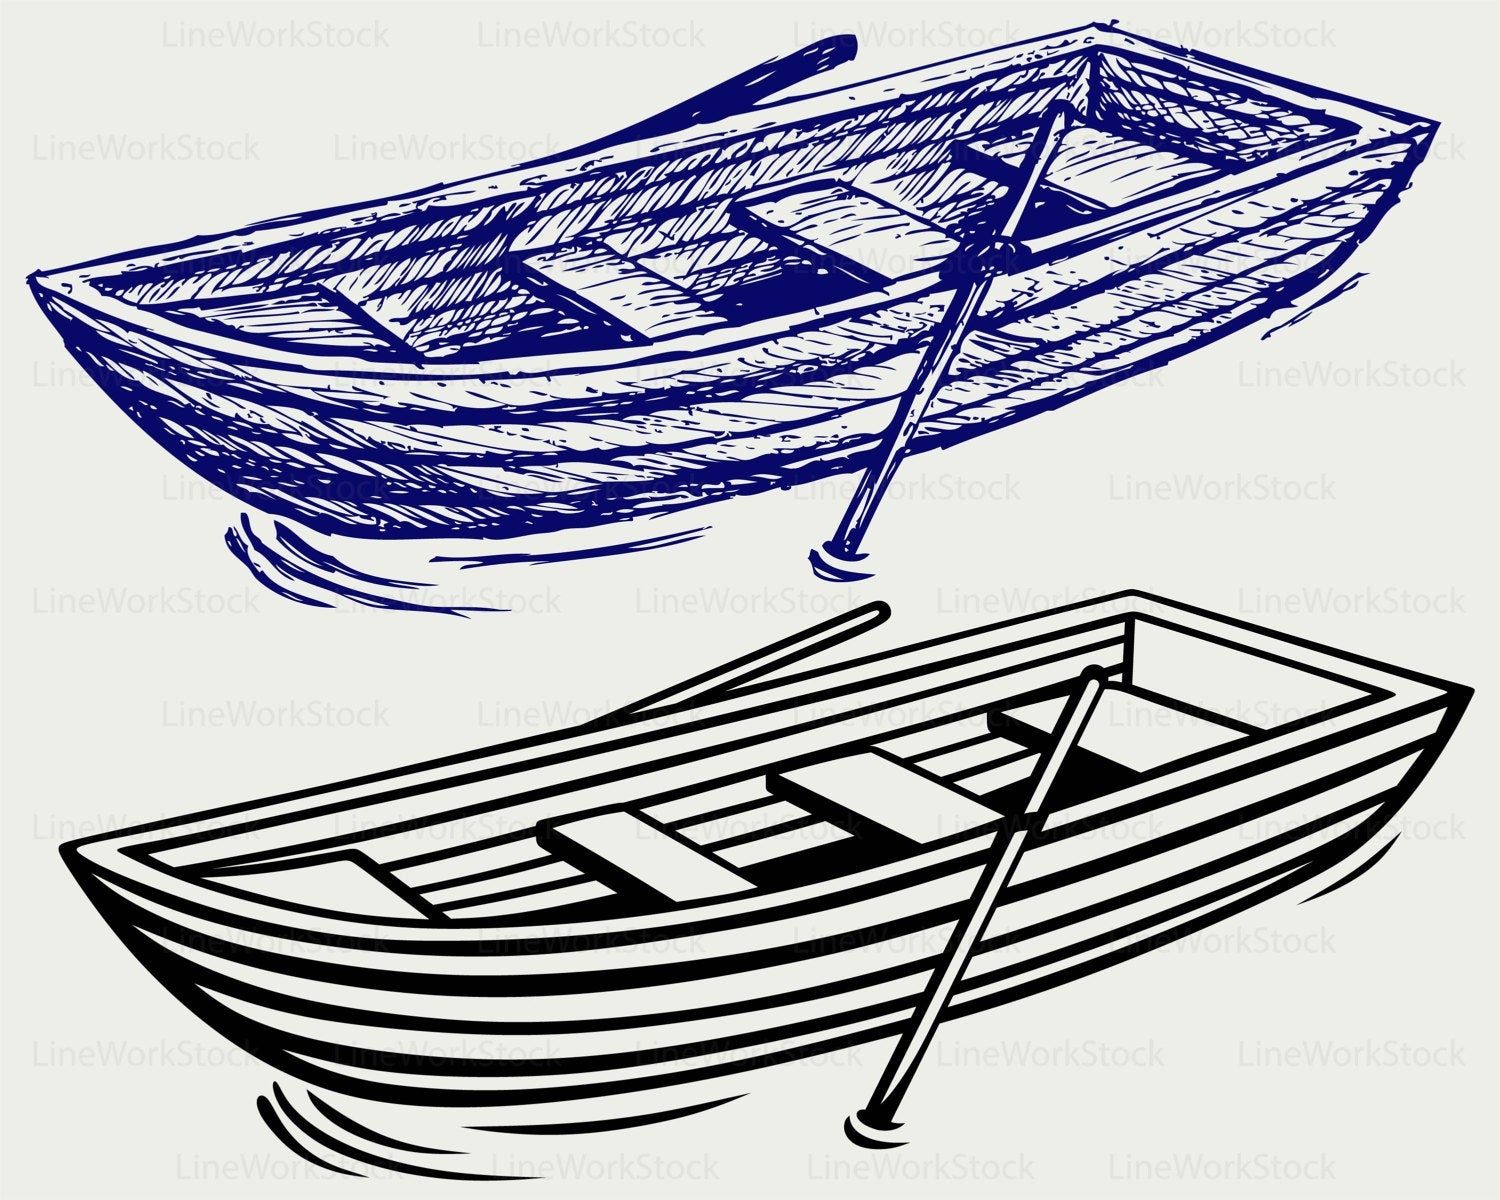 Boat svg #531, Download drawings